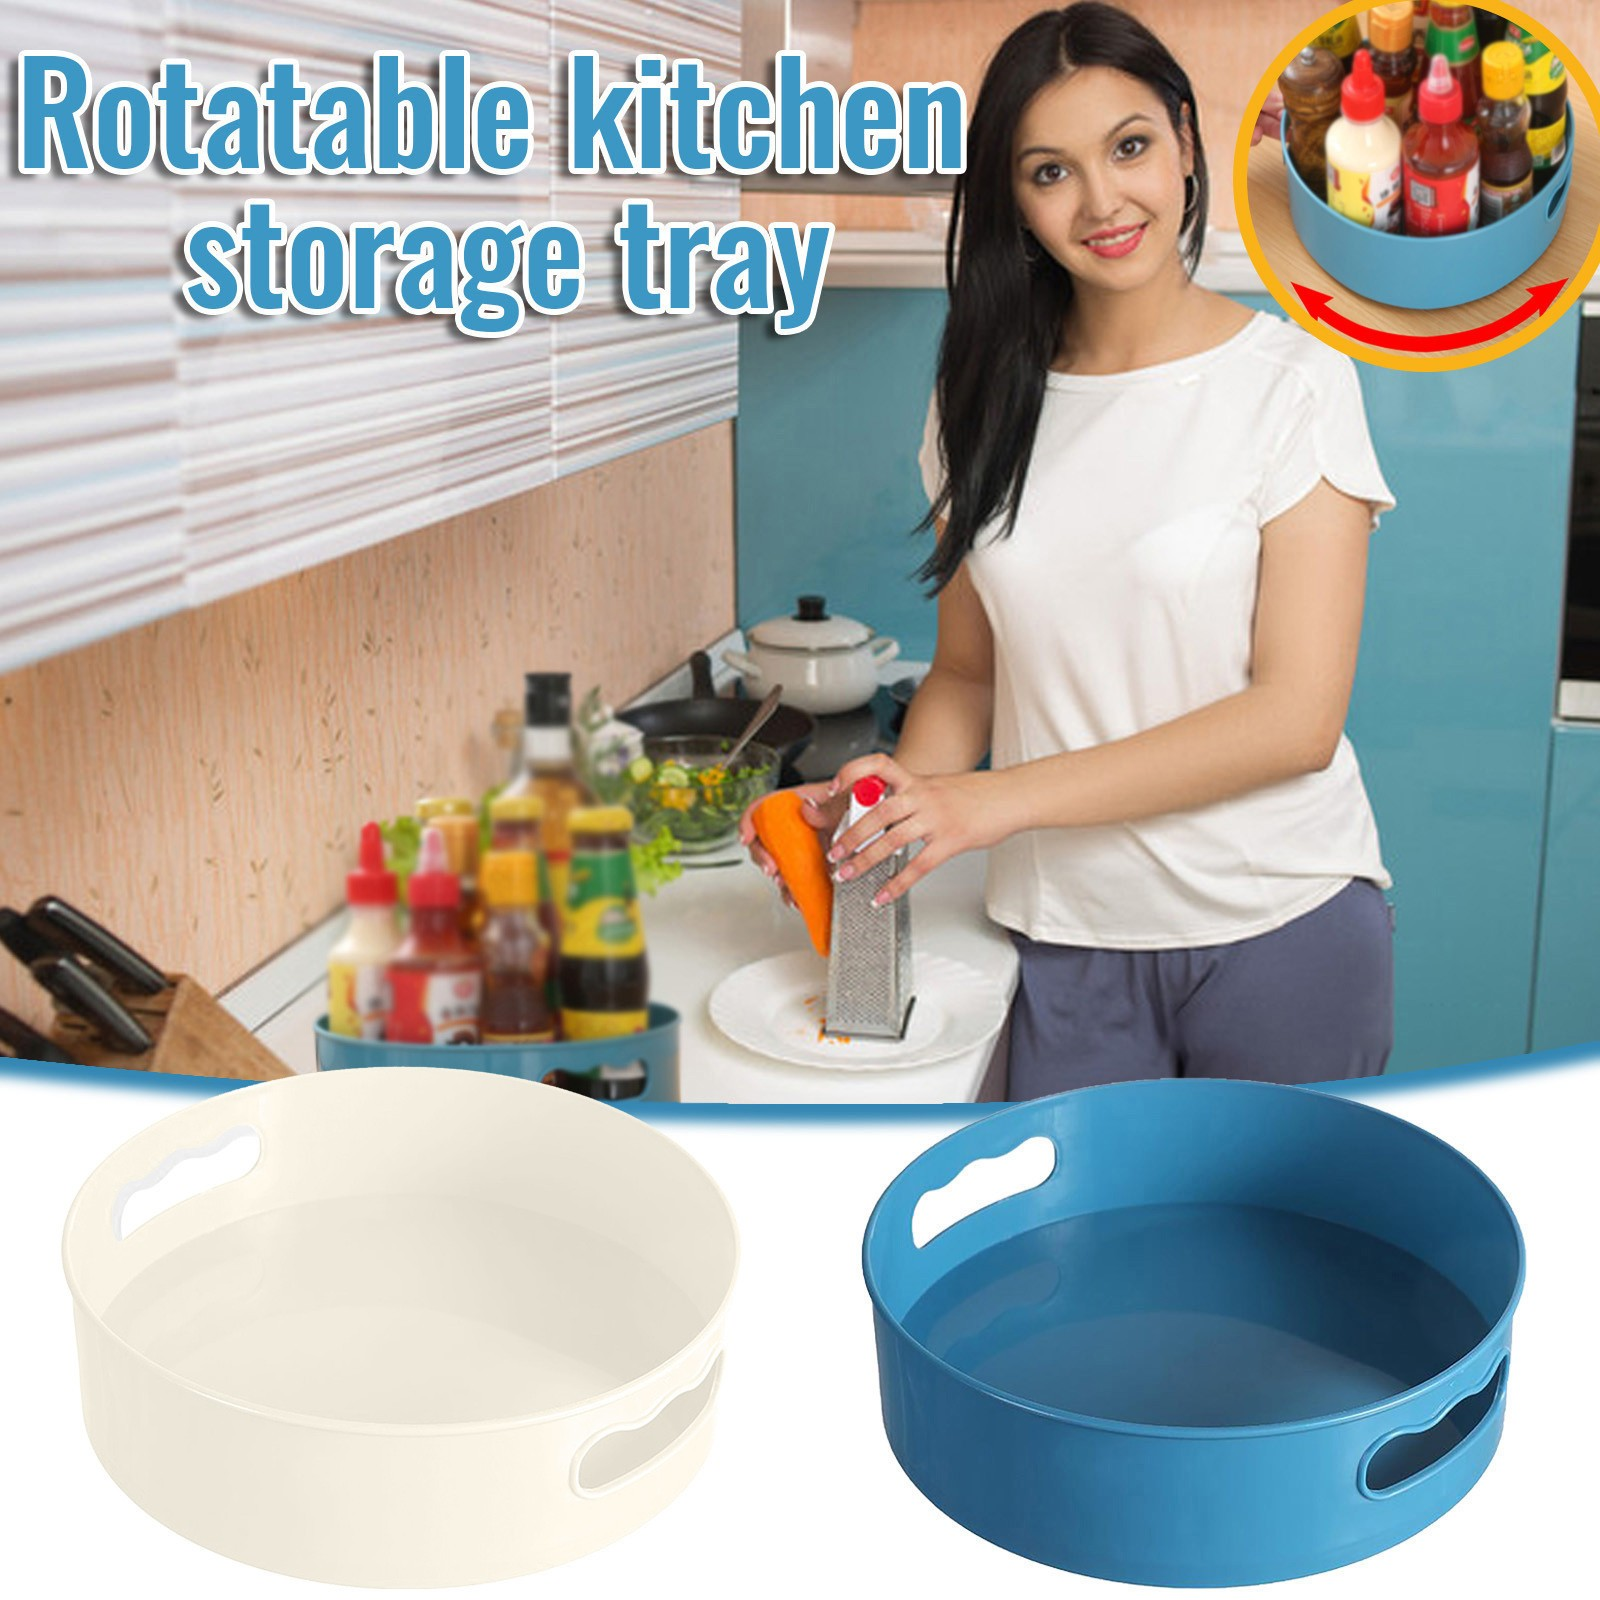 #50 Multifunctional Bathroom Storage Box Rotatable Kitchen Storage Tray With Handle Kitchen Table Meal Ring Trays Storage 1